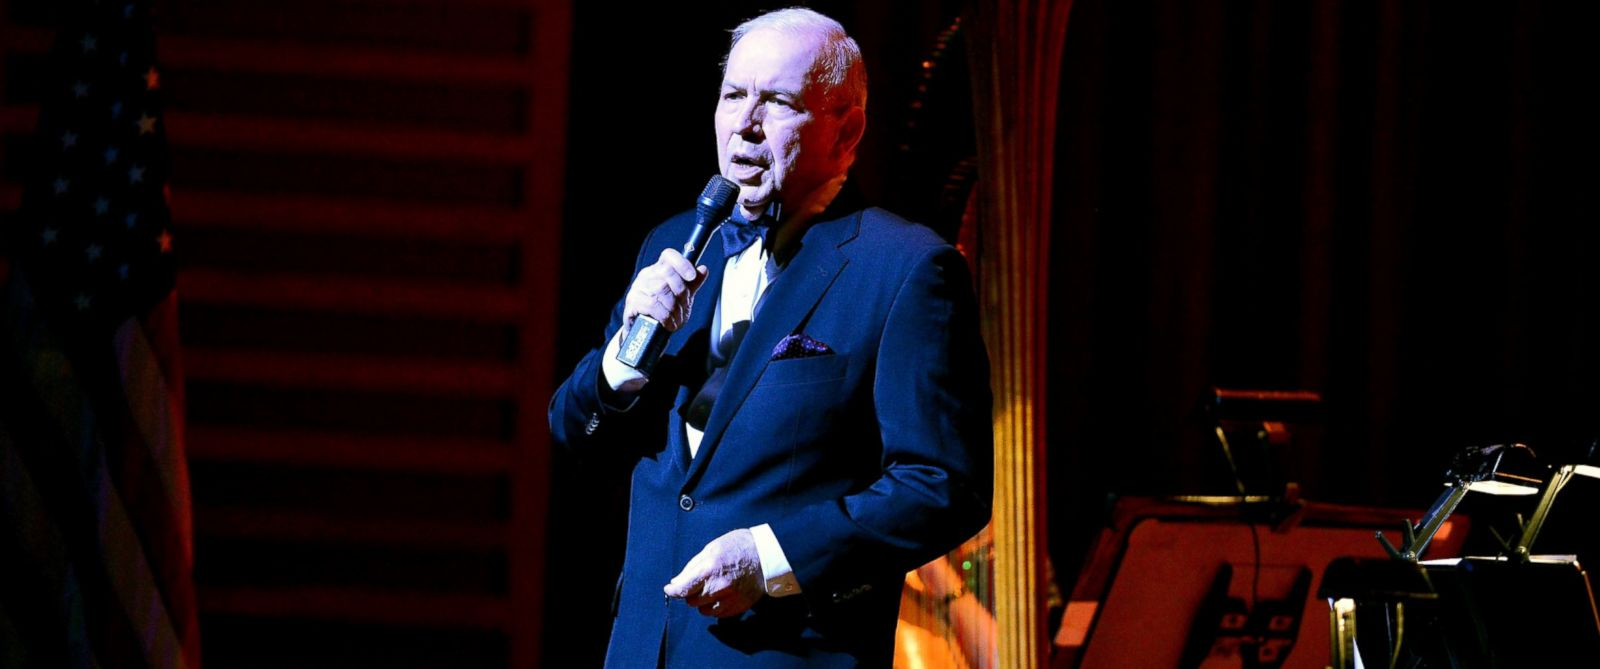 PHOTO:Frank Sinatra Jr. performs during the Jazz Roots: Frank Sinatra Jr. Sings Sinatra, a Multimedia Centennial Celebration at the Knight Concert Hall, March 11, 2016 in Miami.